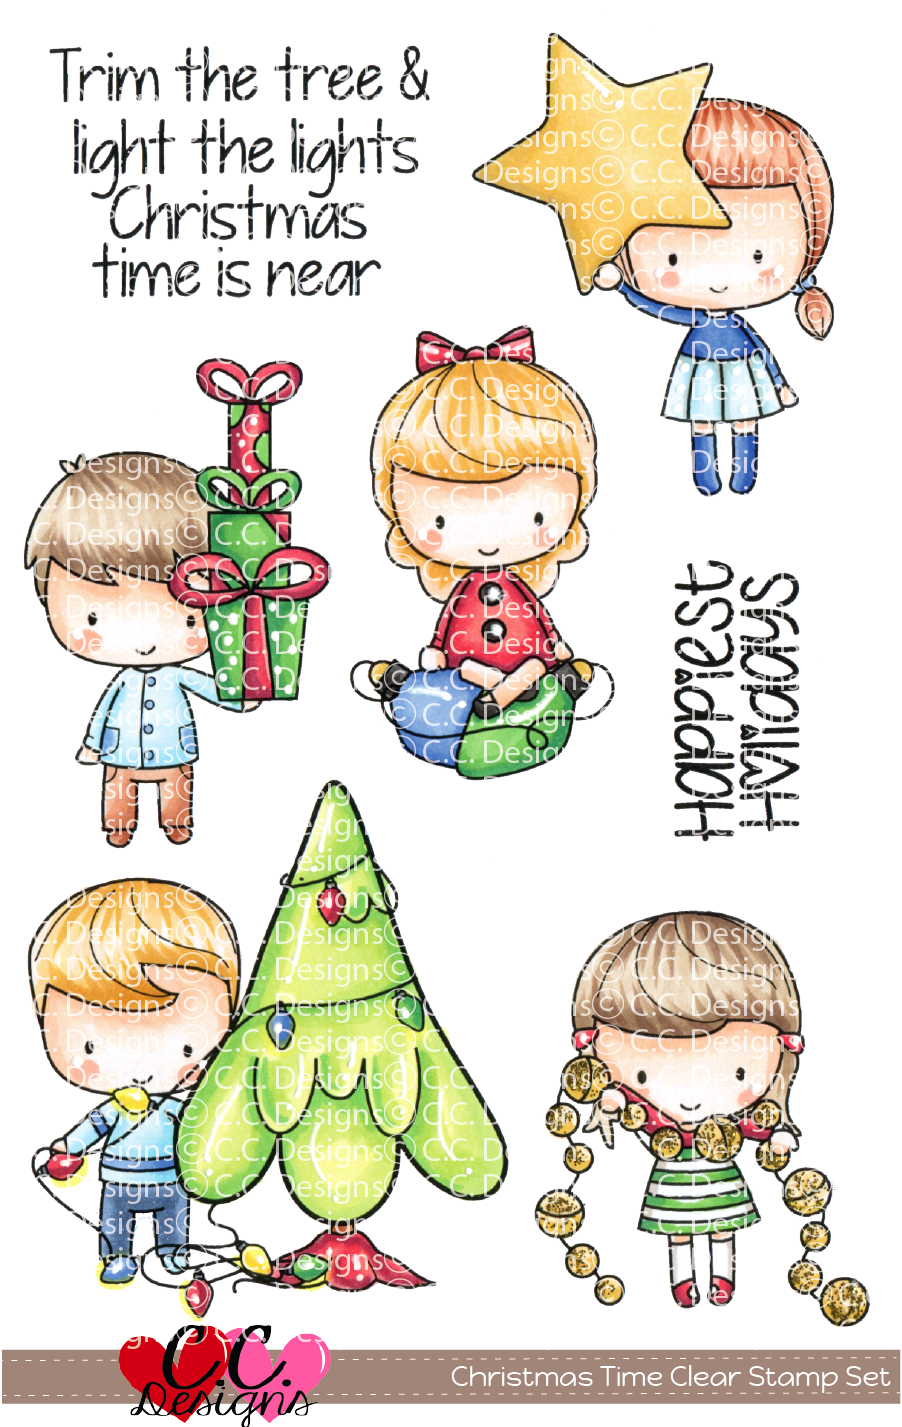 *PRE-ORDER* - CC Designs - Christmas Time Clear Set